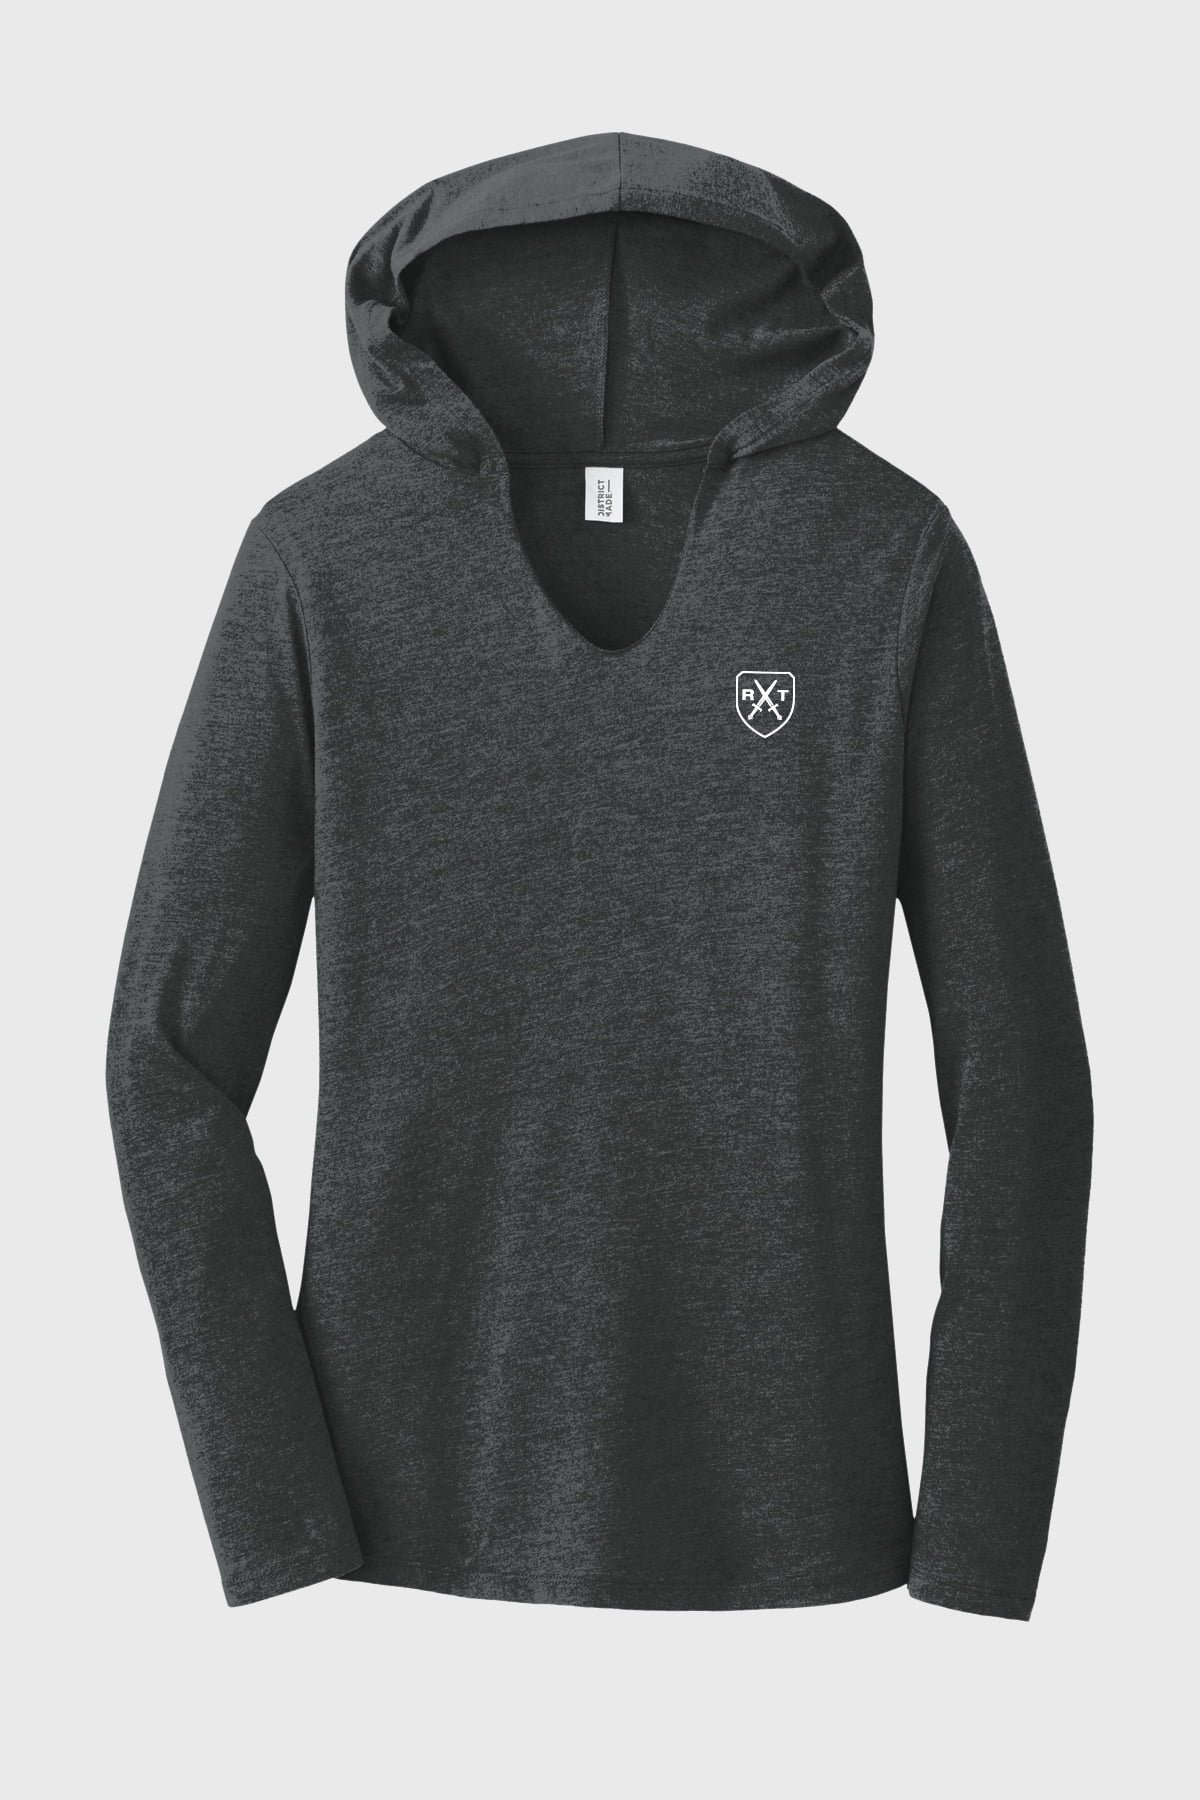 The Cover Me Women's Hoodie